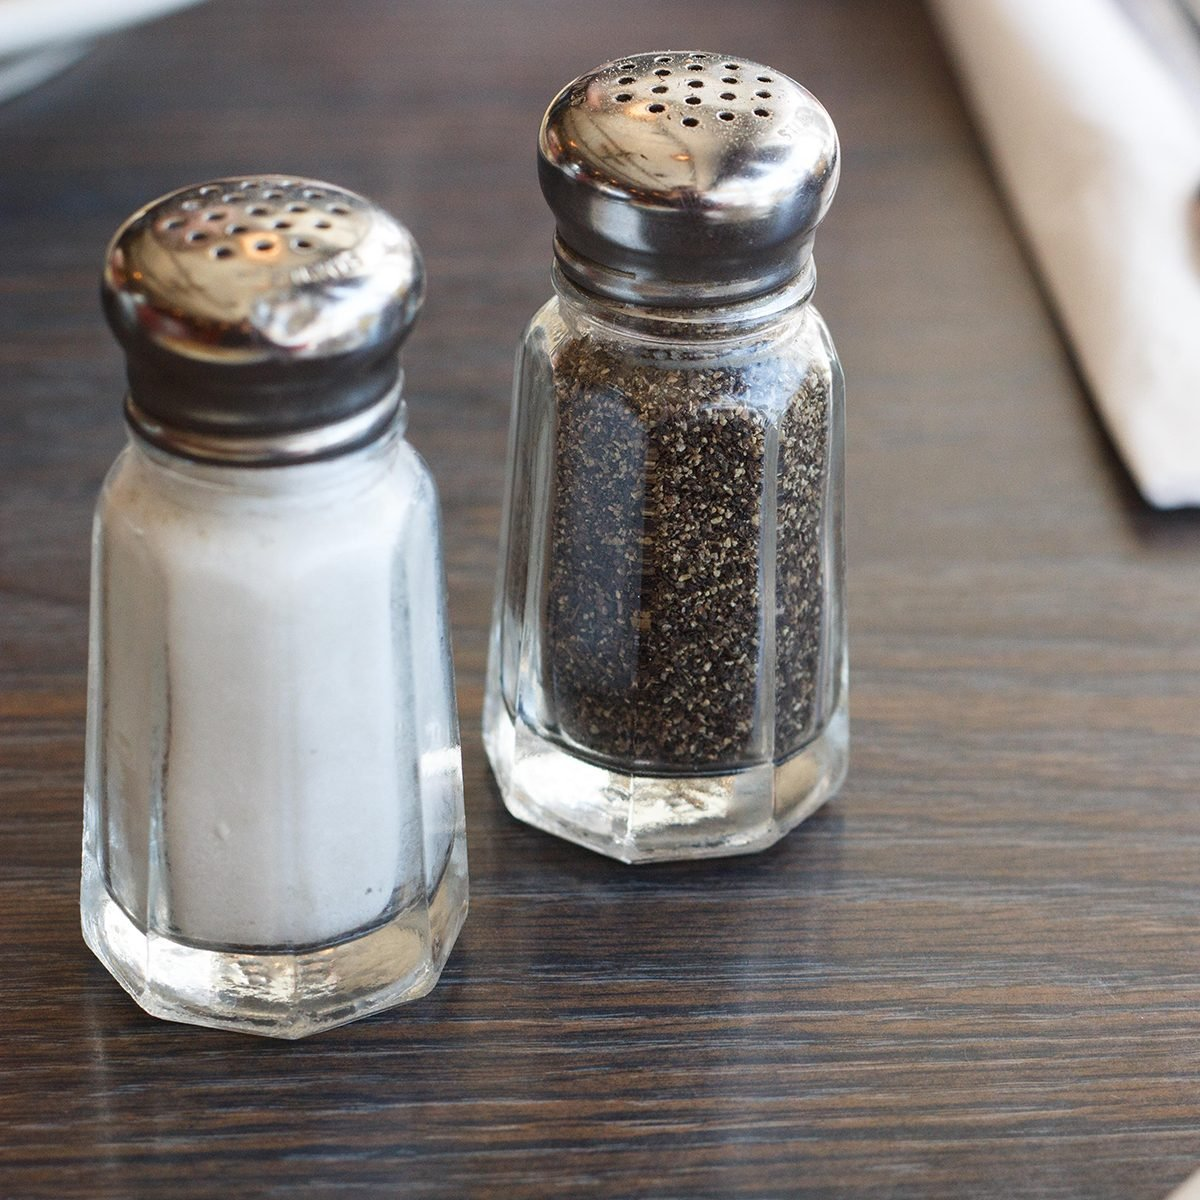 Breakfast scene at a diner with salt and pepper shakers, silverware, and coffee